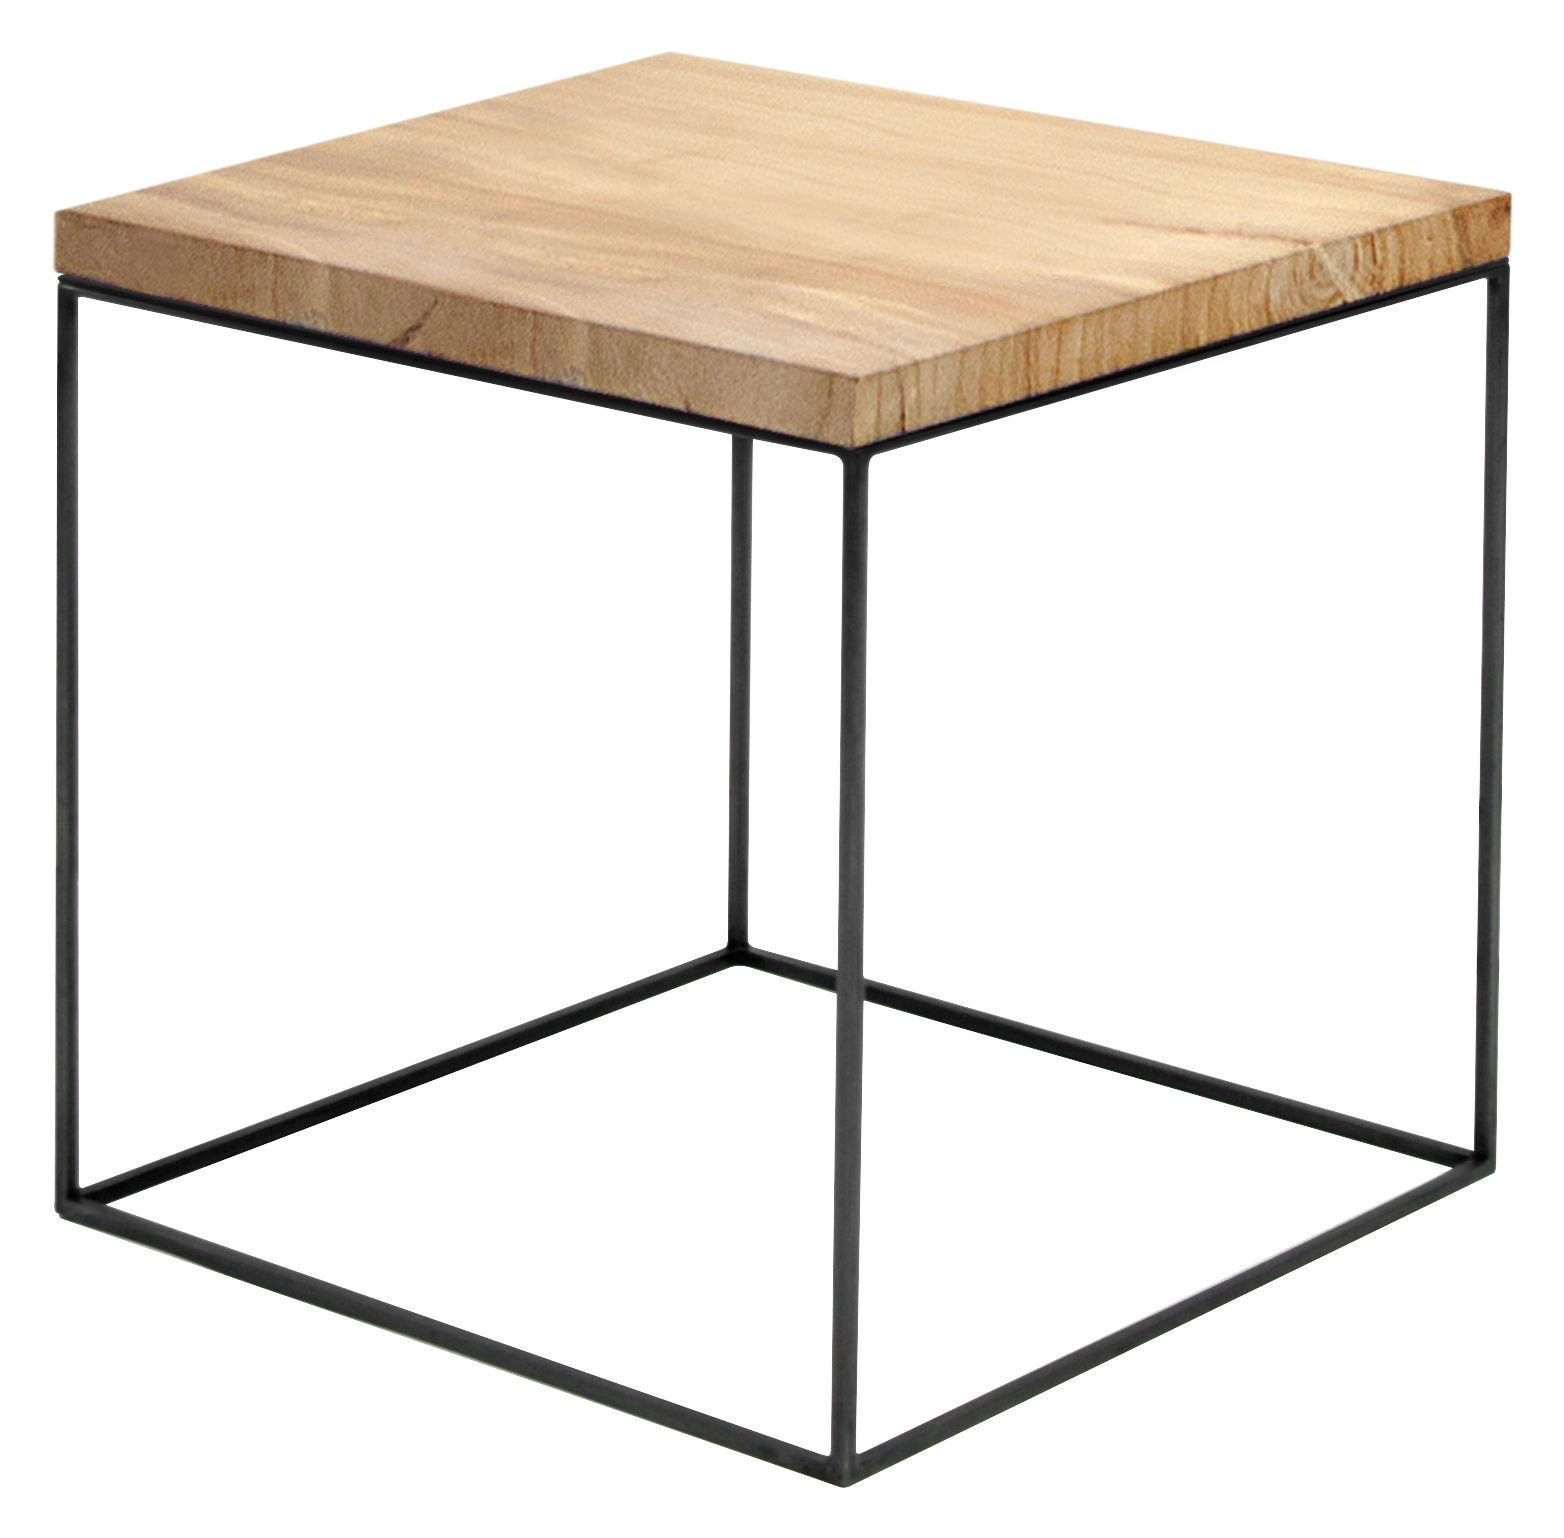 Slim irony coffee table natural wood by zeus for Pietement de table en bois